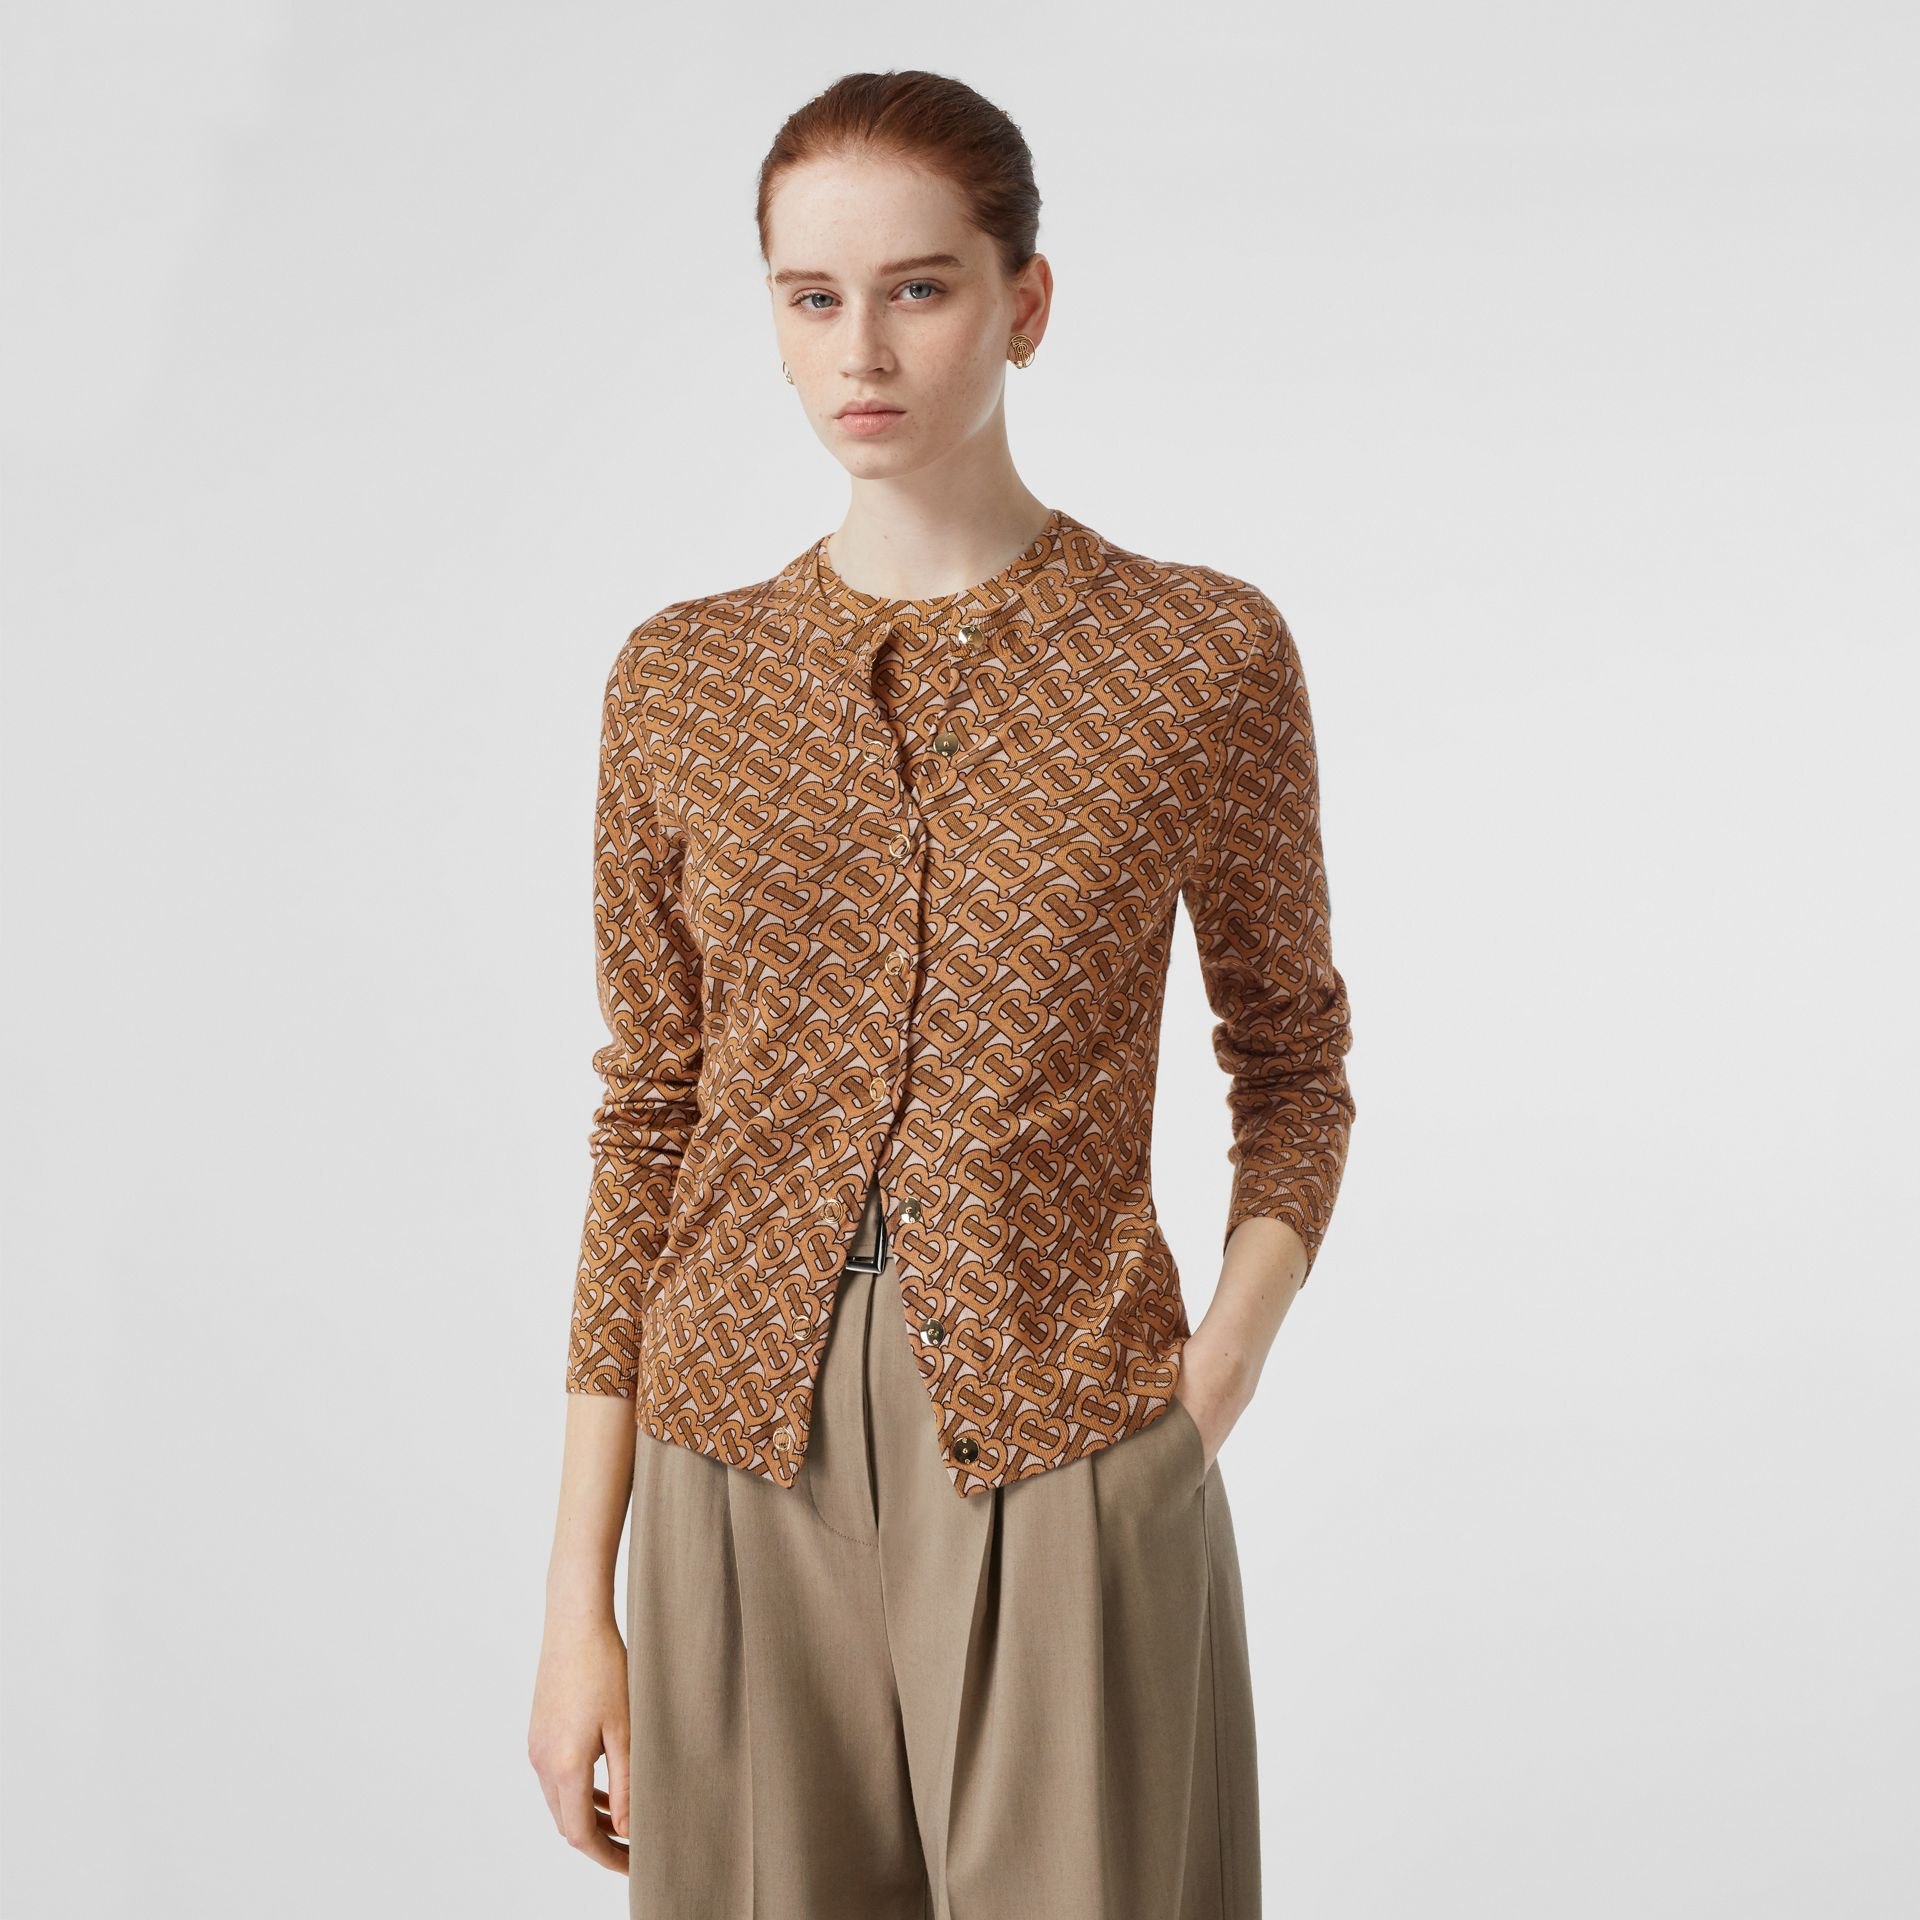 Monogram Print Merino Wool Cardigan in Beige - Women | Burberry Singapore - gallery image 4